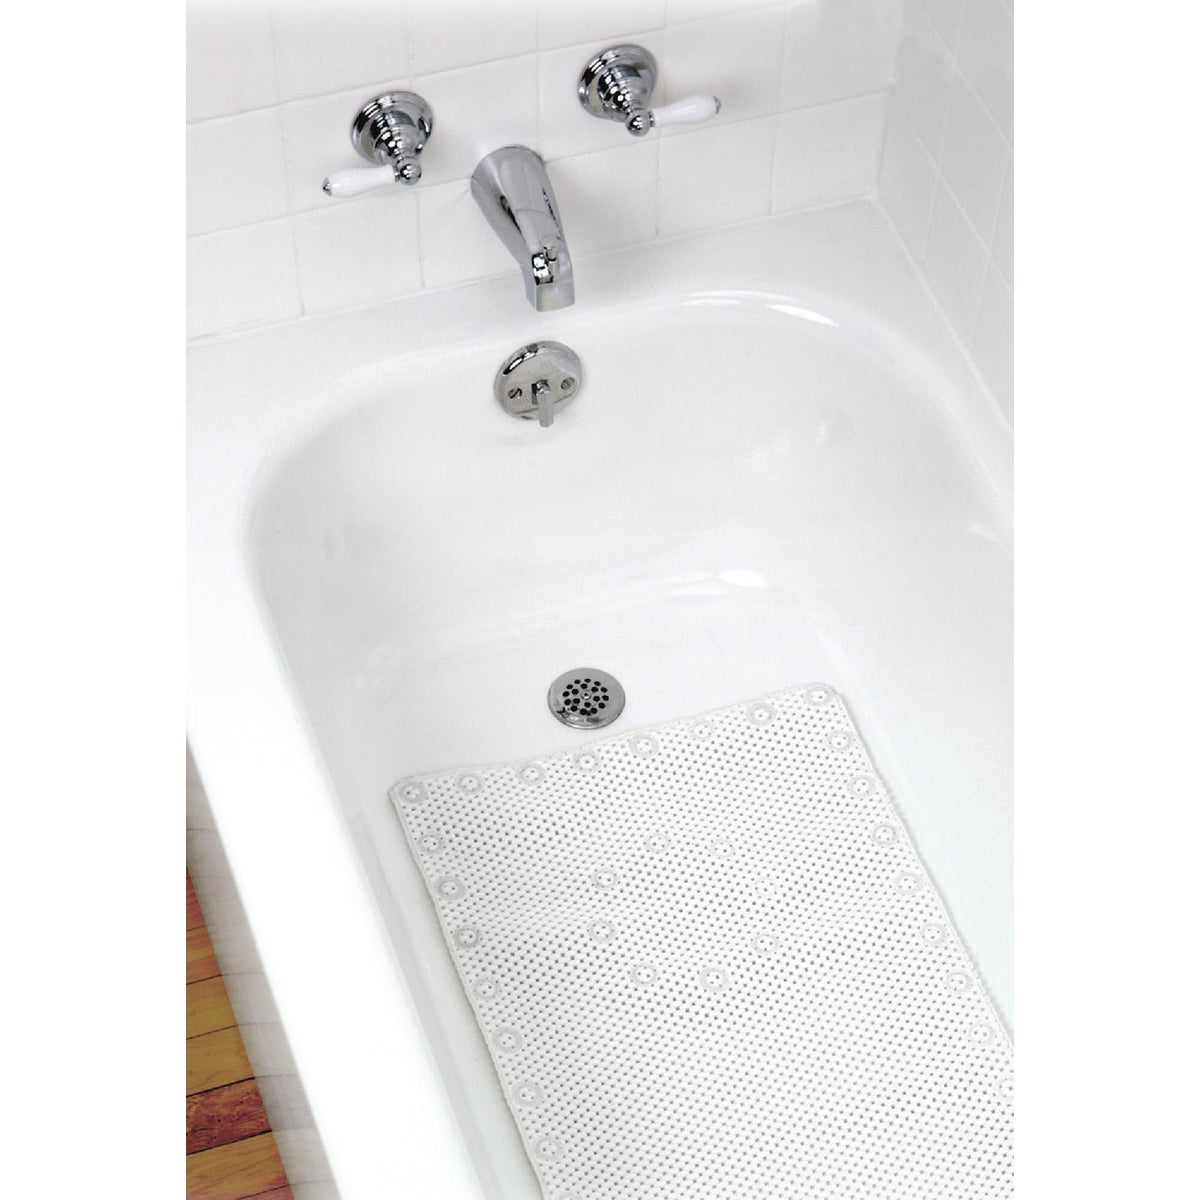 WHITE FOAM BATH MAT - 79WW04 by Zenith Prod Corp